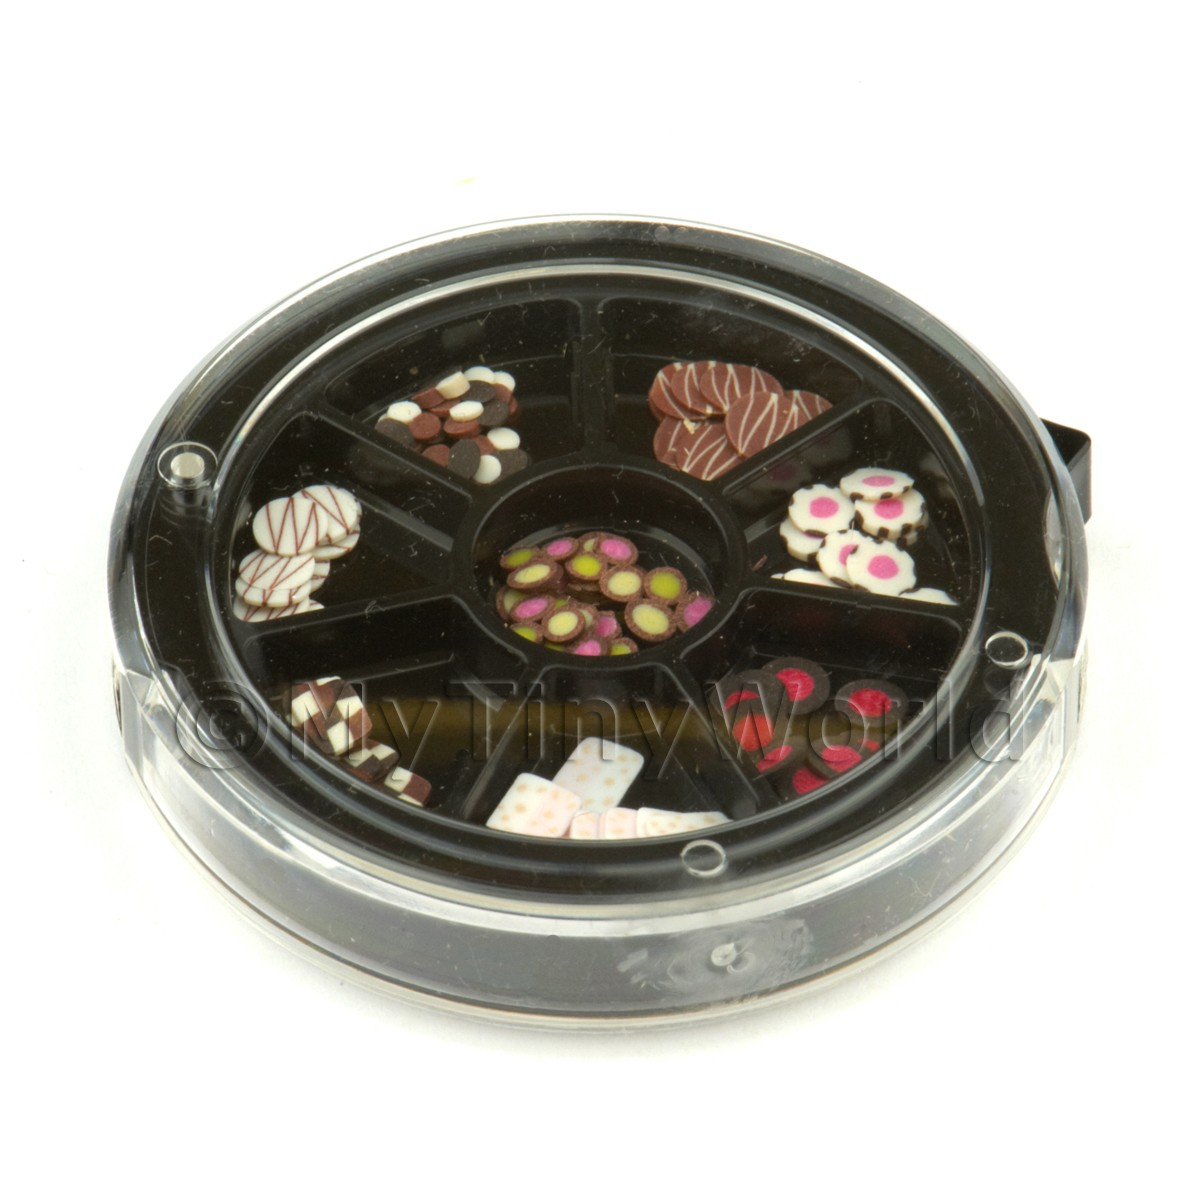 80 Assorted Nail Art Chocolate Slices In a Wheel Set 2